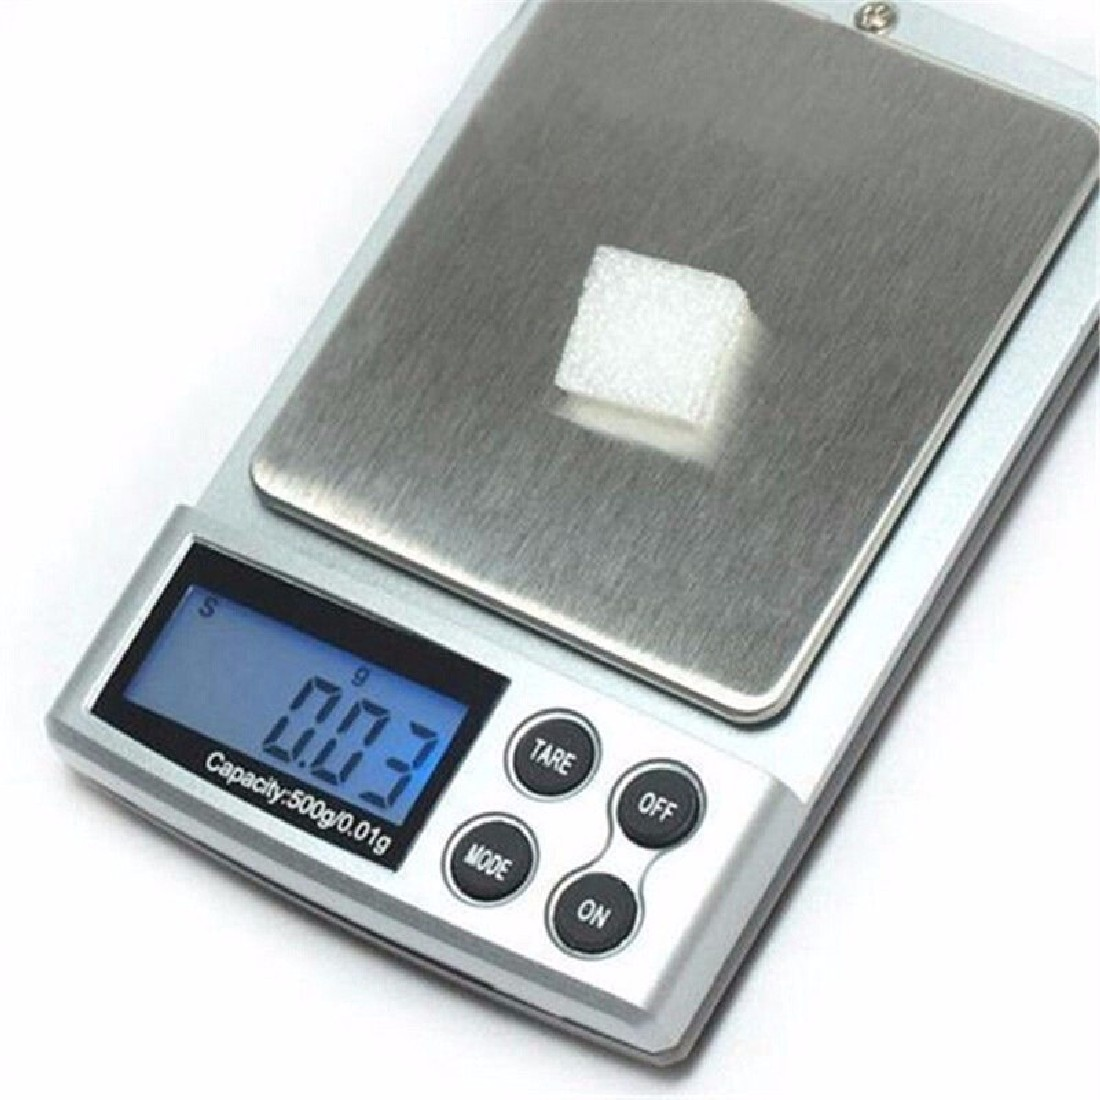 Kitchen tools 1pc 500g x 0 01g digital precision scale jewelry weight balance scales lcd display units pocket electronic scales in kitchen scales from home